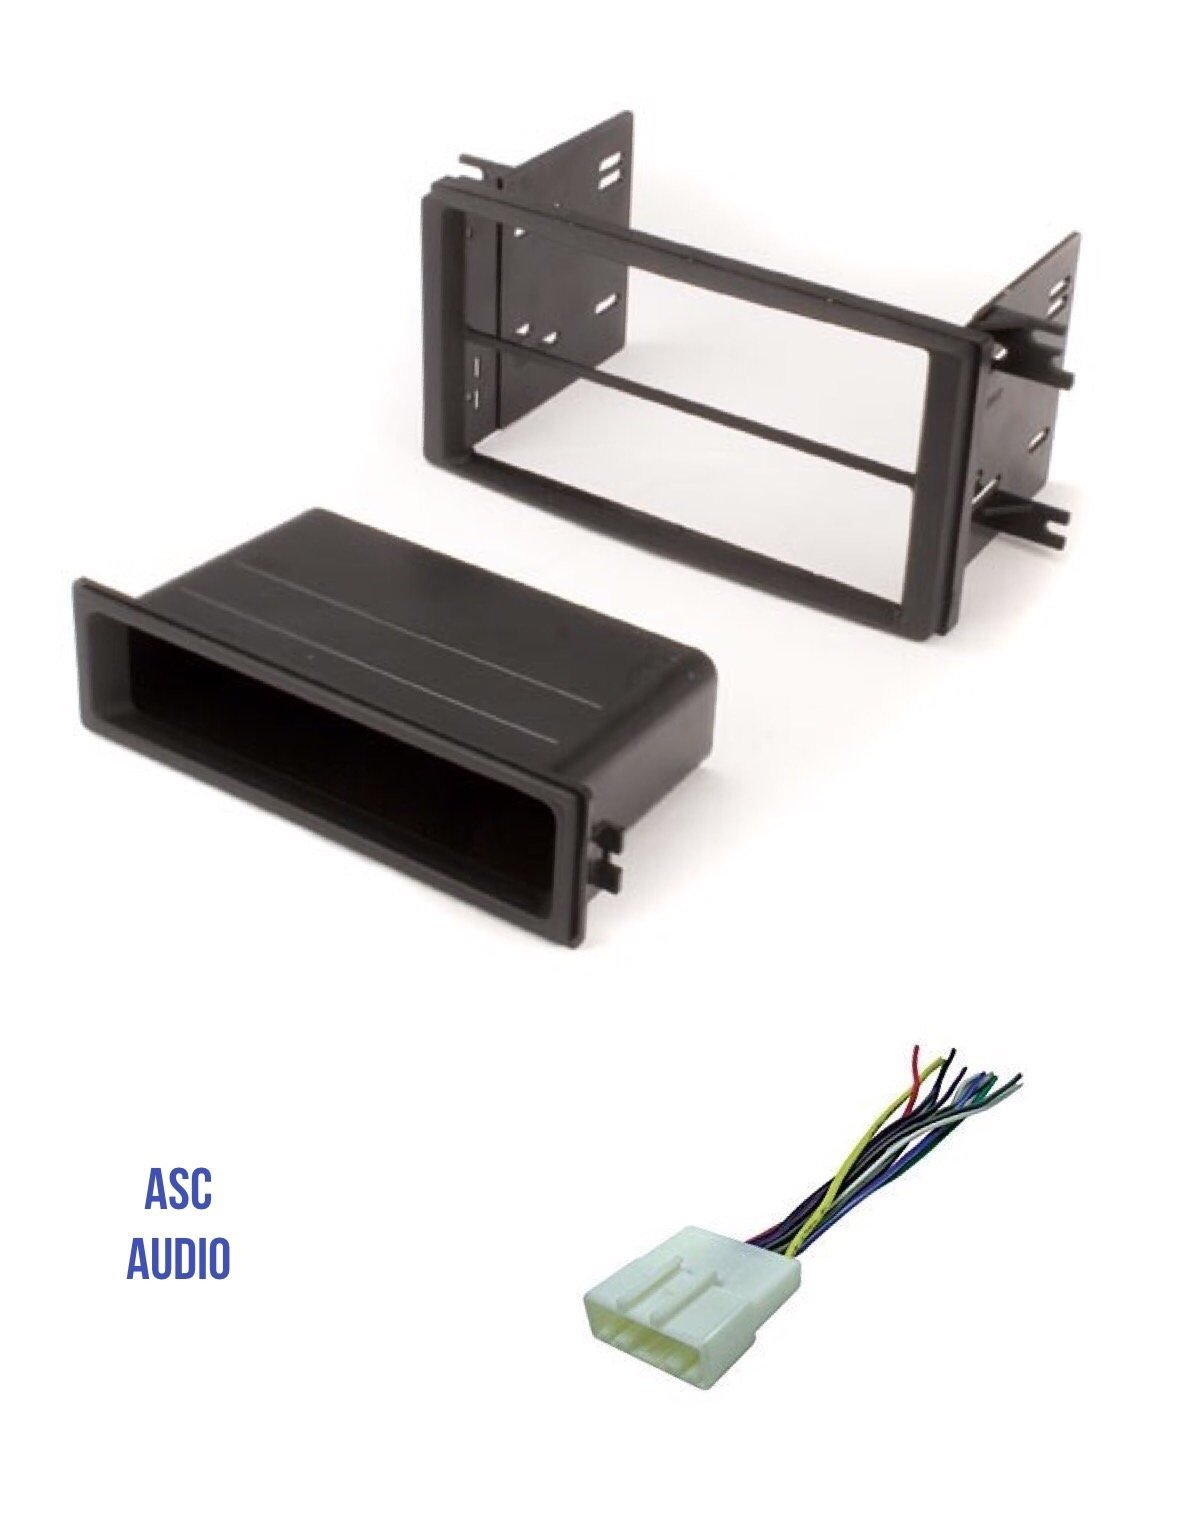 hight resolution of asc car stereo install dash kit and wire harness for installing an aftermarket single or double din radio for 2009 2013 subaru forester 2008 2011 subaru